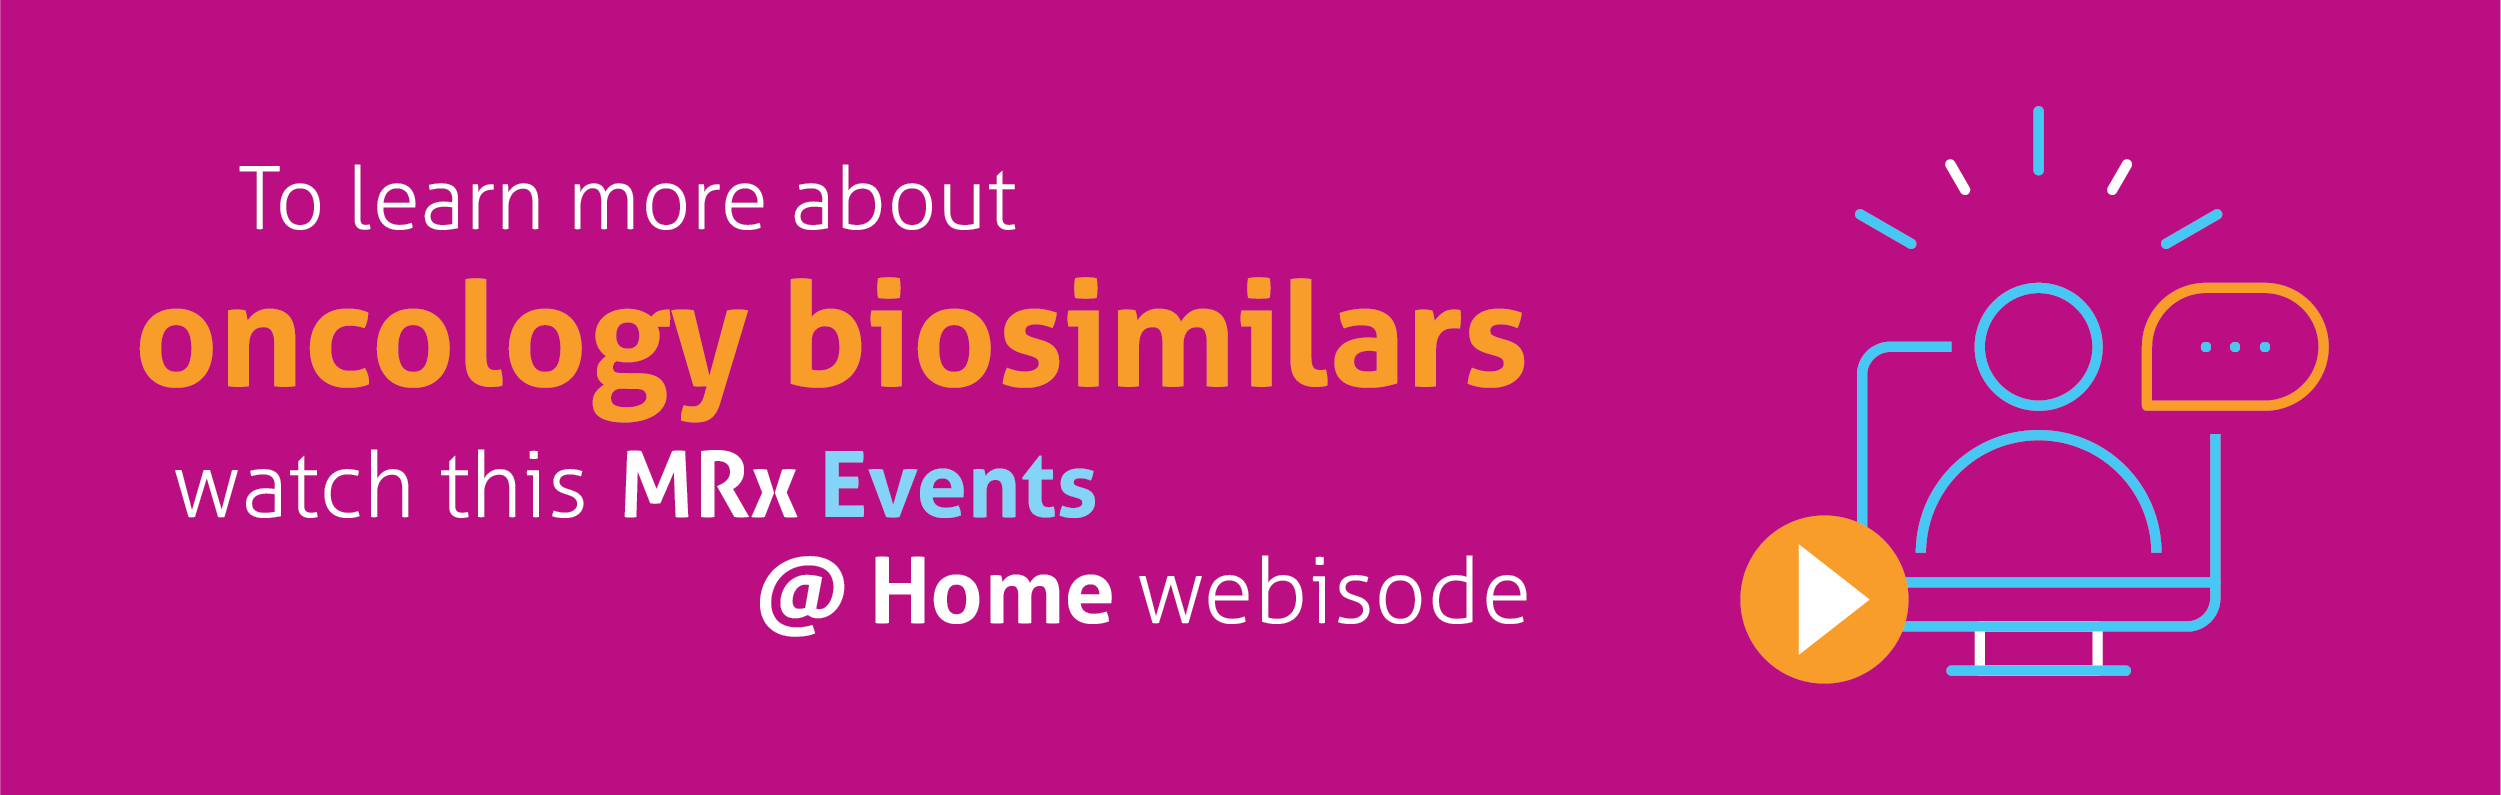 To learn more about oncology biosimilars, watch this MRx Events webisode.